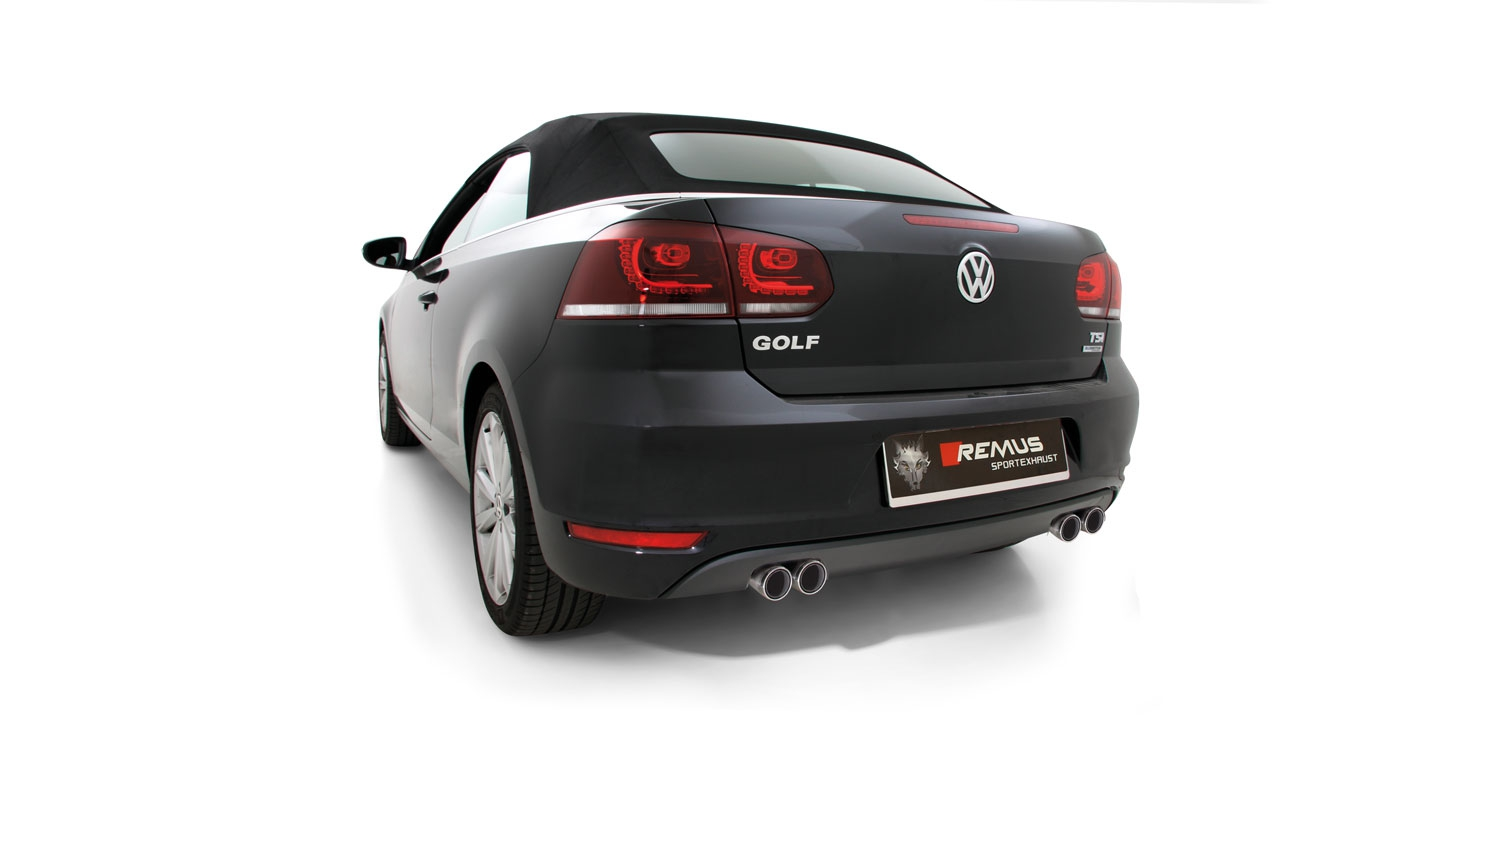 remus news remus product information 38 2016 vw golf vi golf vi cabrio scirocco. Black Bedroom Furniture Sets. Home Design Ideas